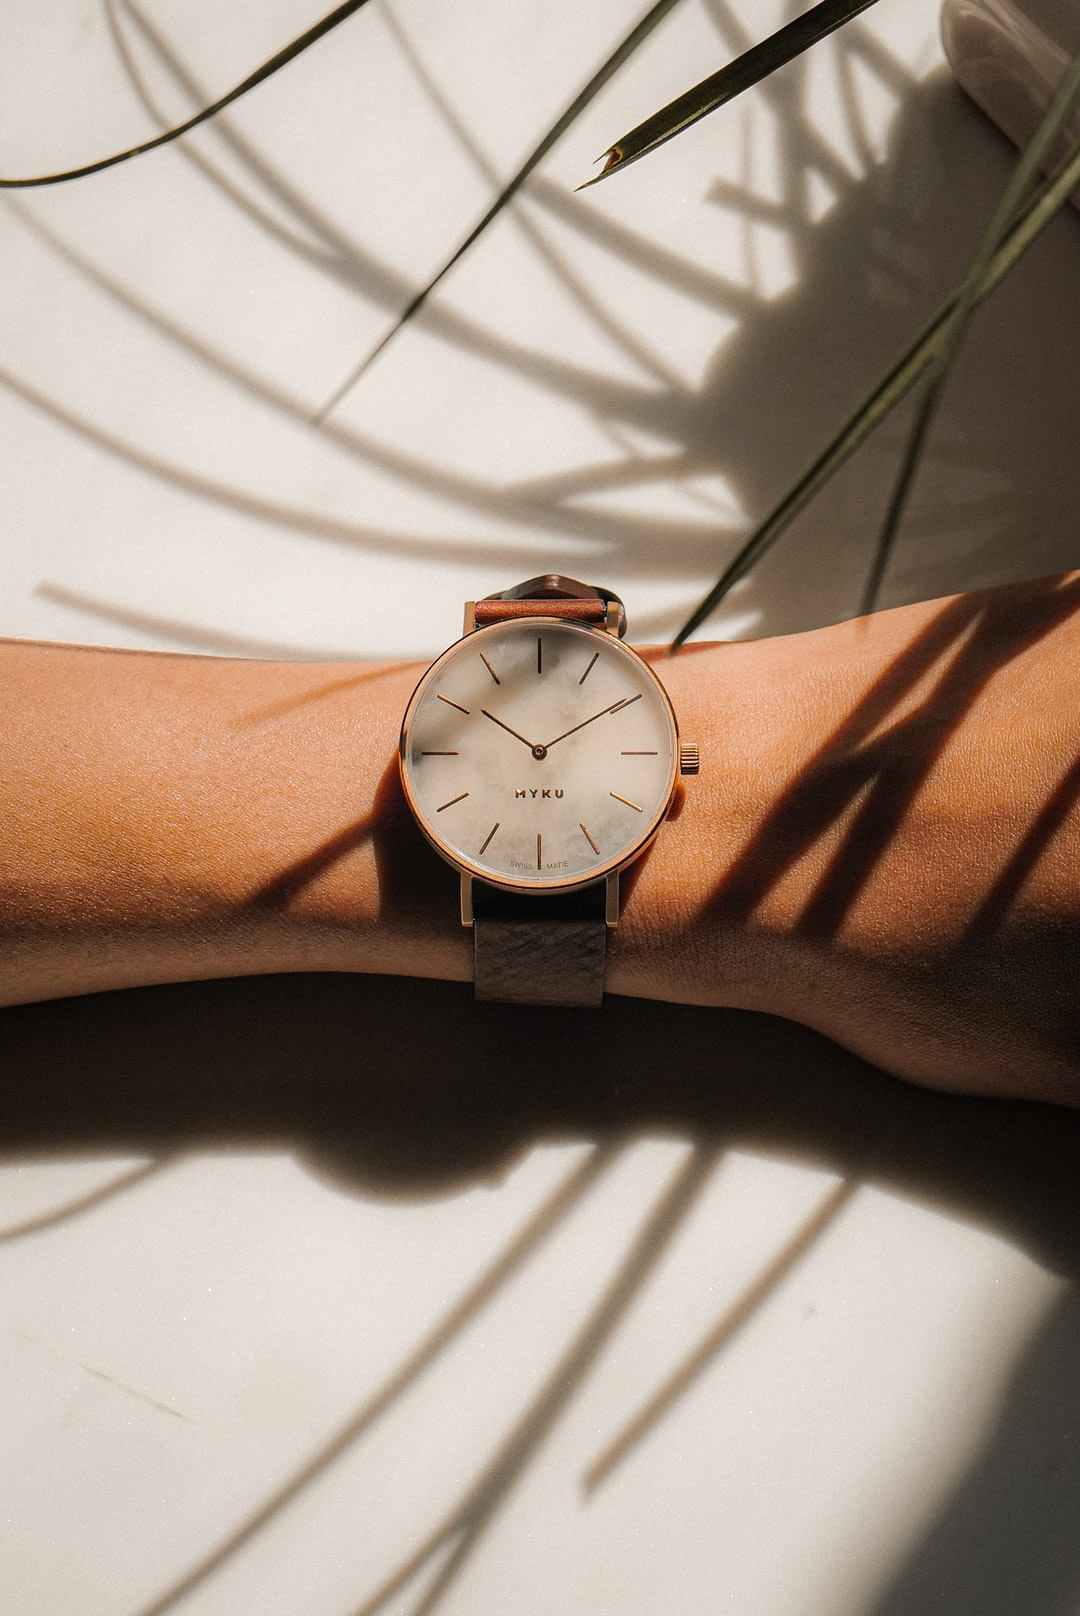 Marble Watch on Lady's wrist, plant casting shadows